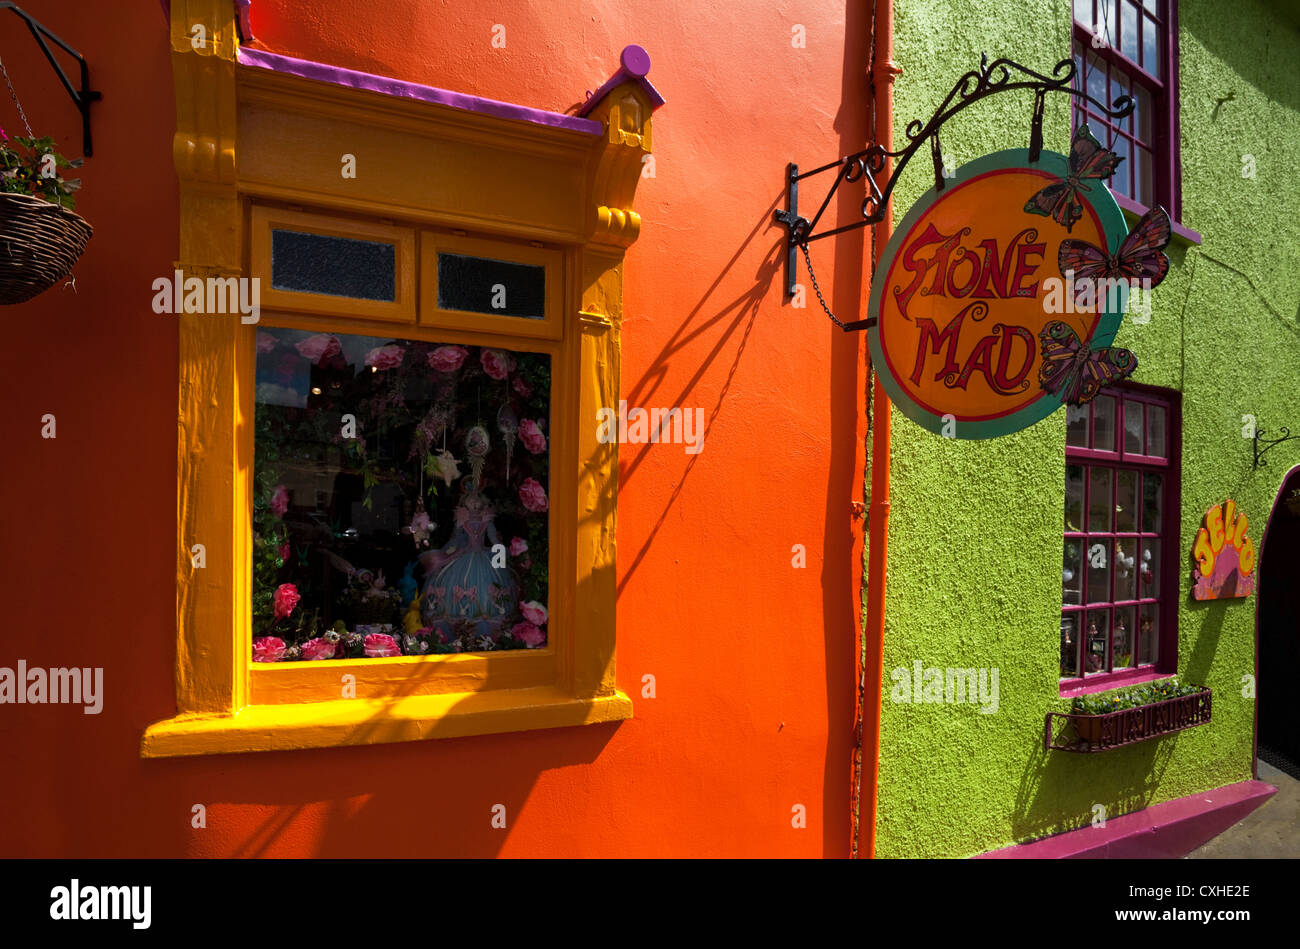 Brightly painted shop front off Market Square, Kinsale, County Cork, Ireland - Stock Image